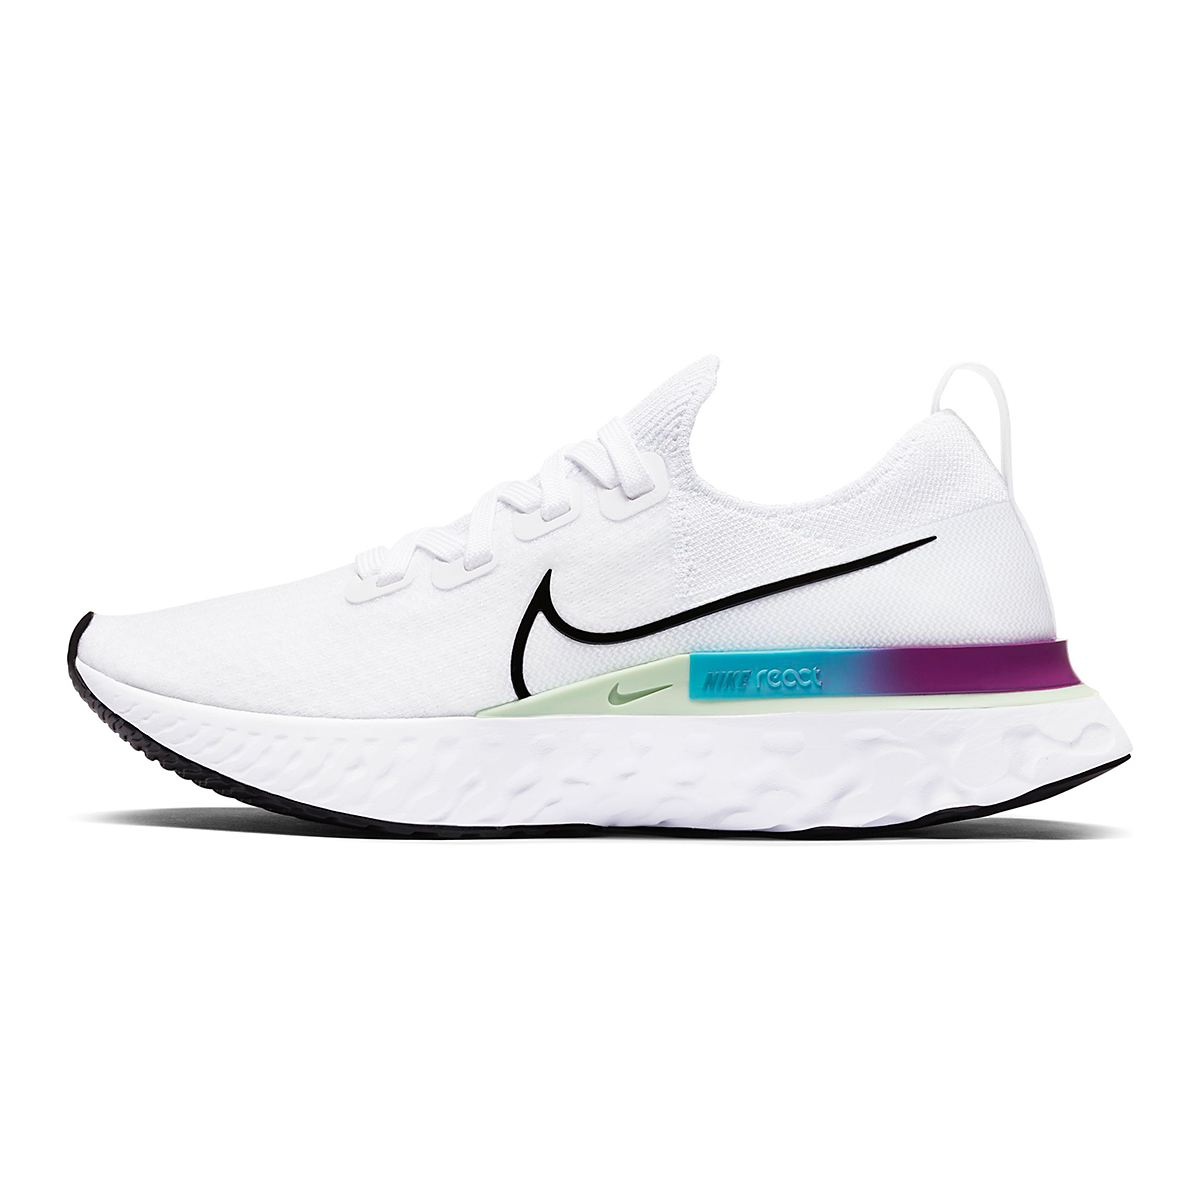 Women's Nike React Infinity Run Flyknit Running Shoe - Color: White/Vapor Green/Oracle Aqua/Black - Size: 5 - Width: Regular, White/Vapor Green/Oracle Aqua/Black, large, image 3